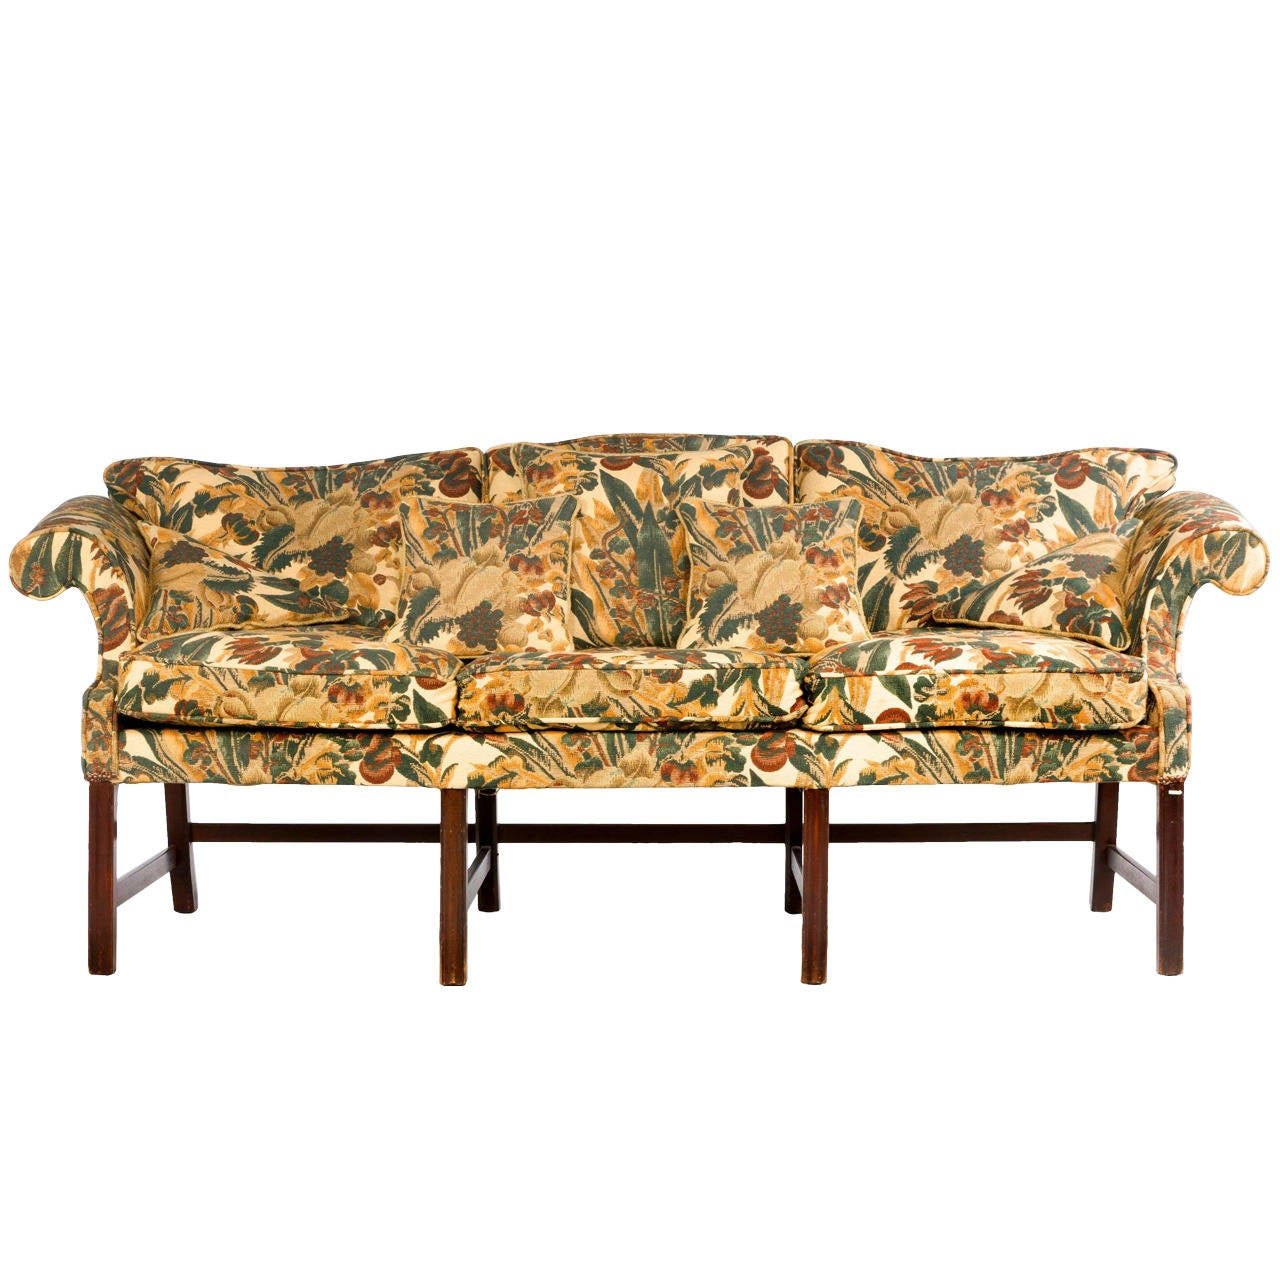 Chippendale Period Camel Back Sofa For Sale At 1stdibs